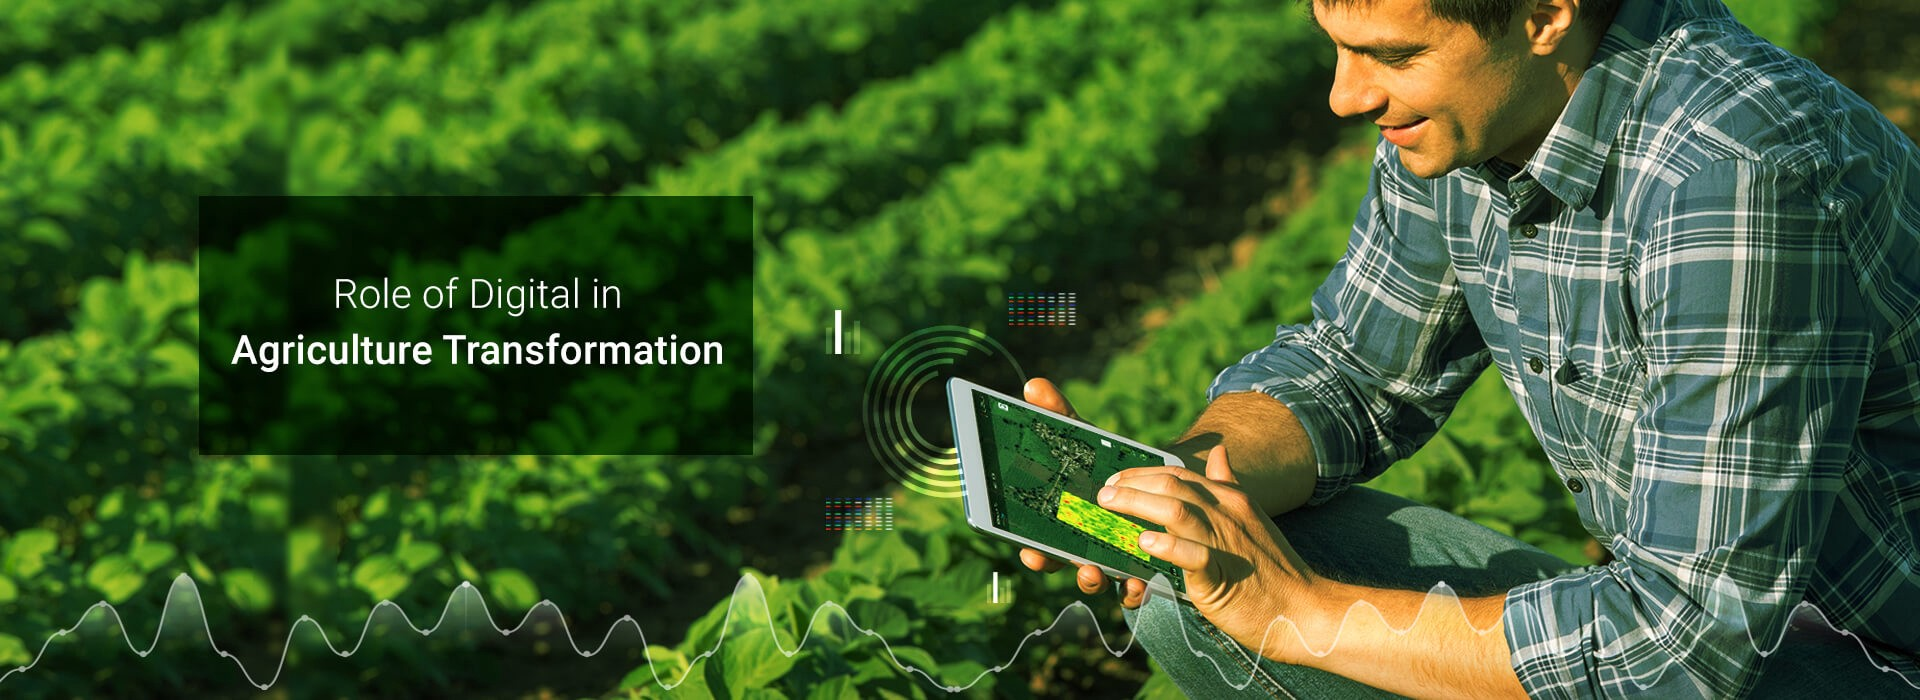 """Banner Image: """"Role of Digital in Agriculture Transformation"""""""